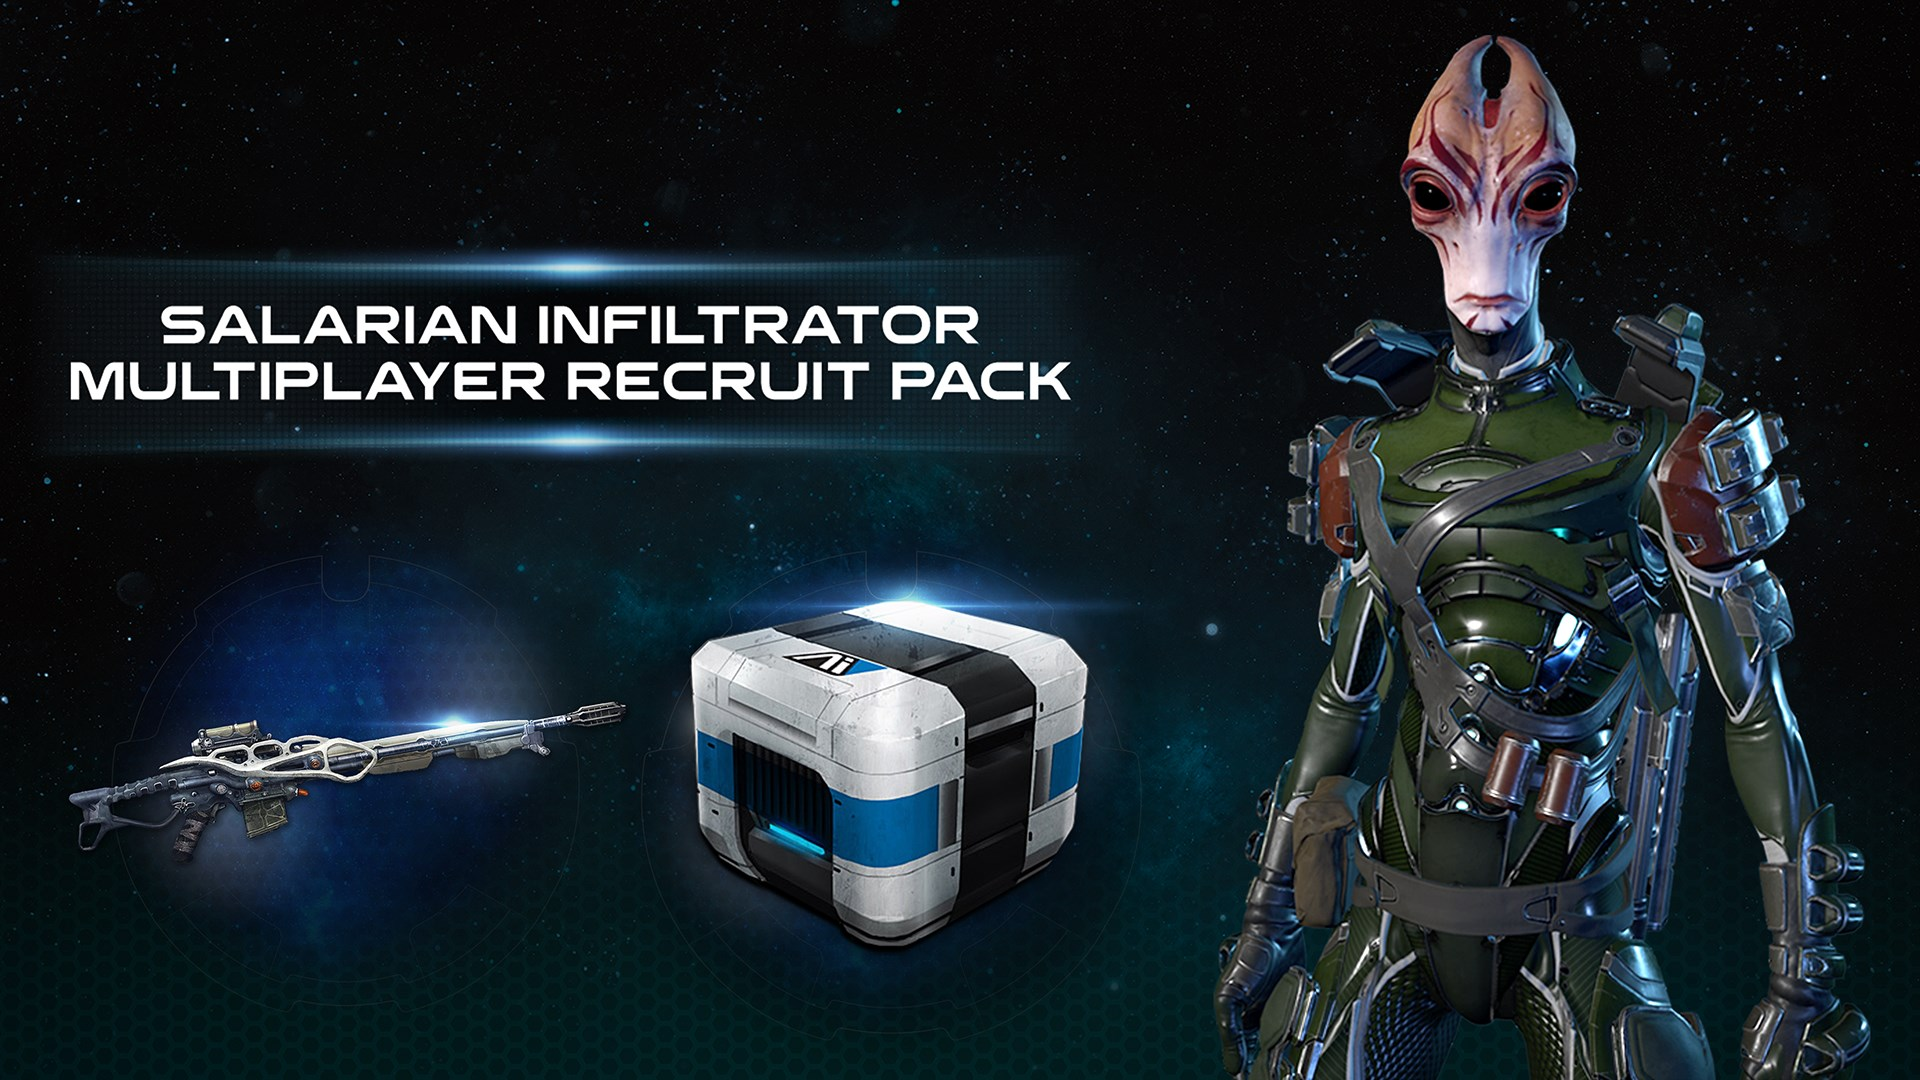 Mass Effect™: Andromeda - Salarian Infiltrator Multiplayer Recruit Pack